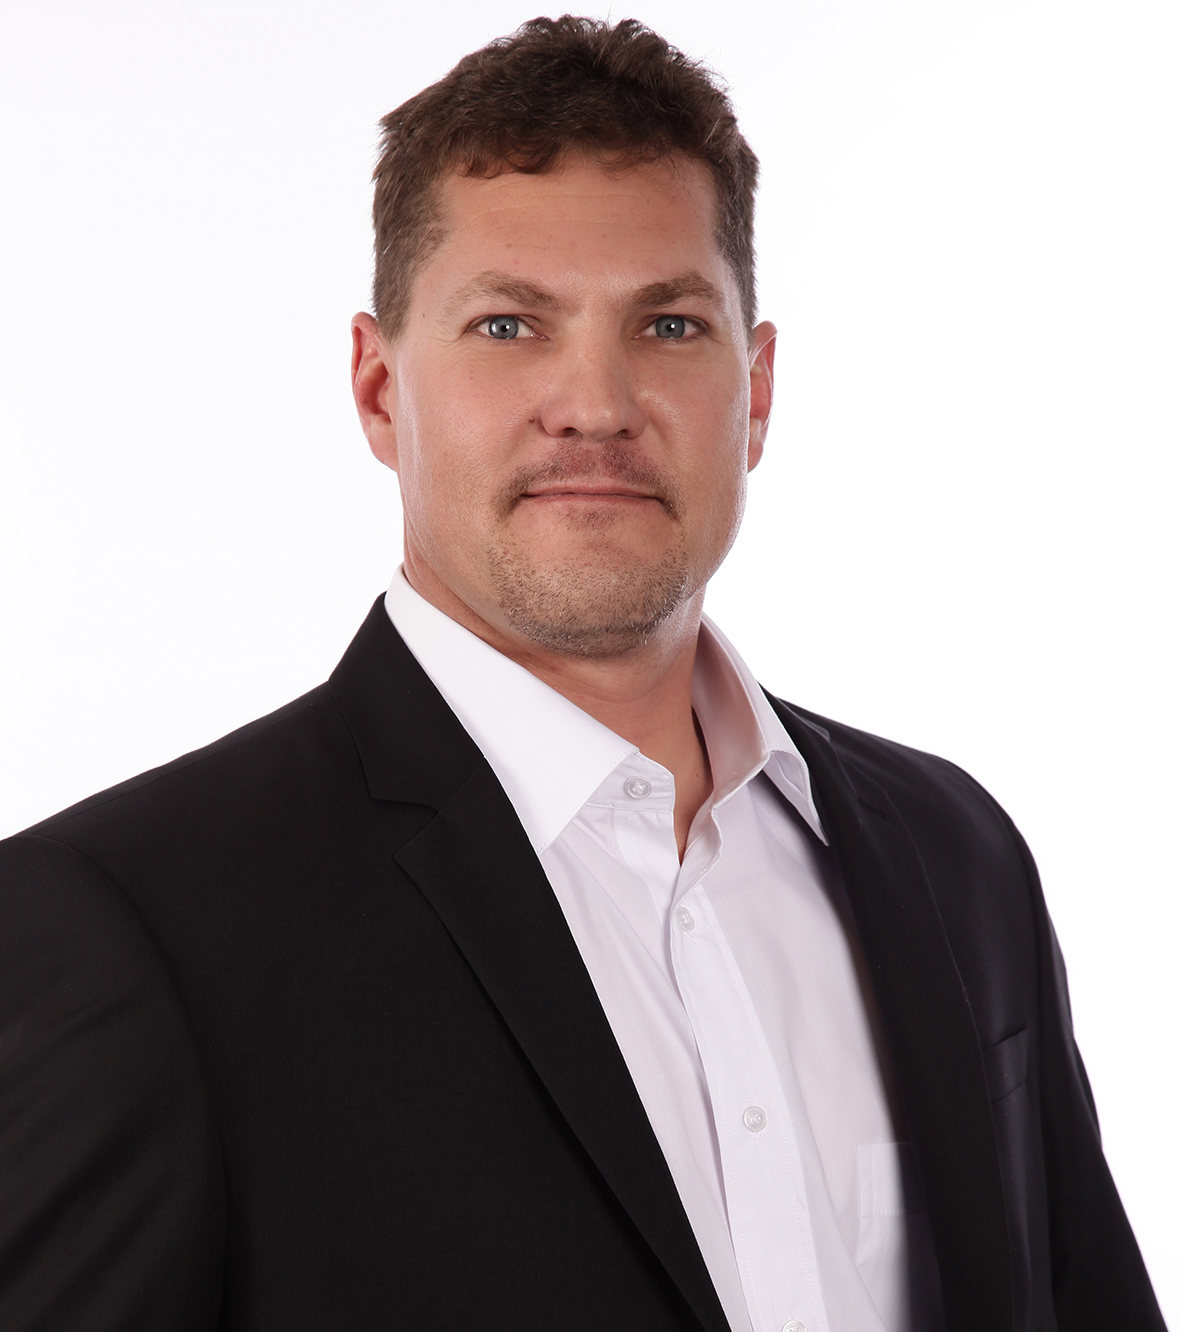 Gert Basson, general manager of Mobile Solutions at VSc Solutions.